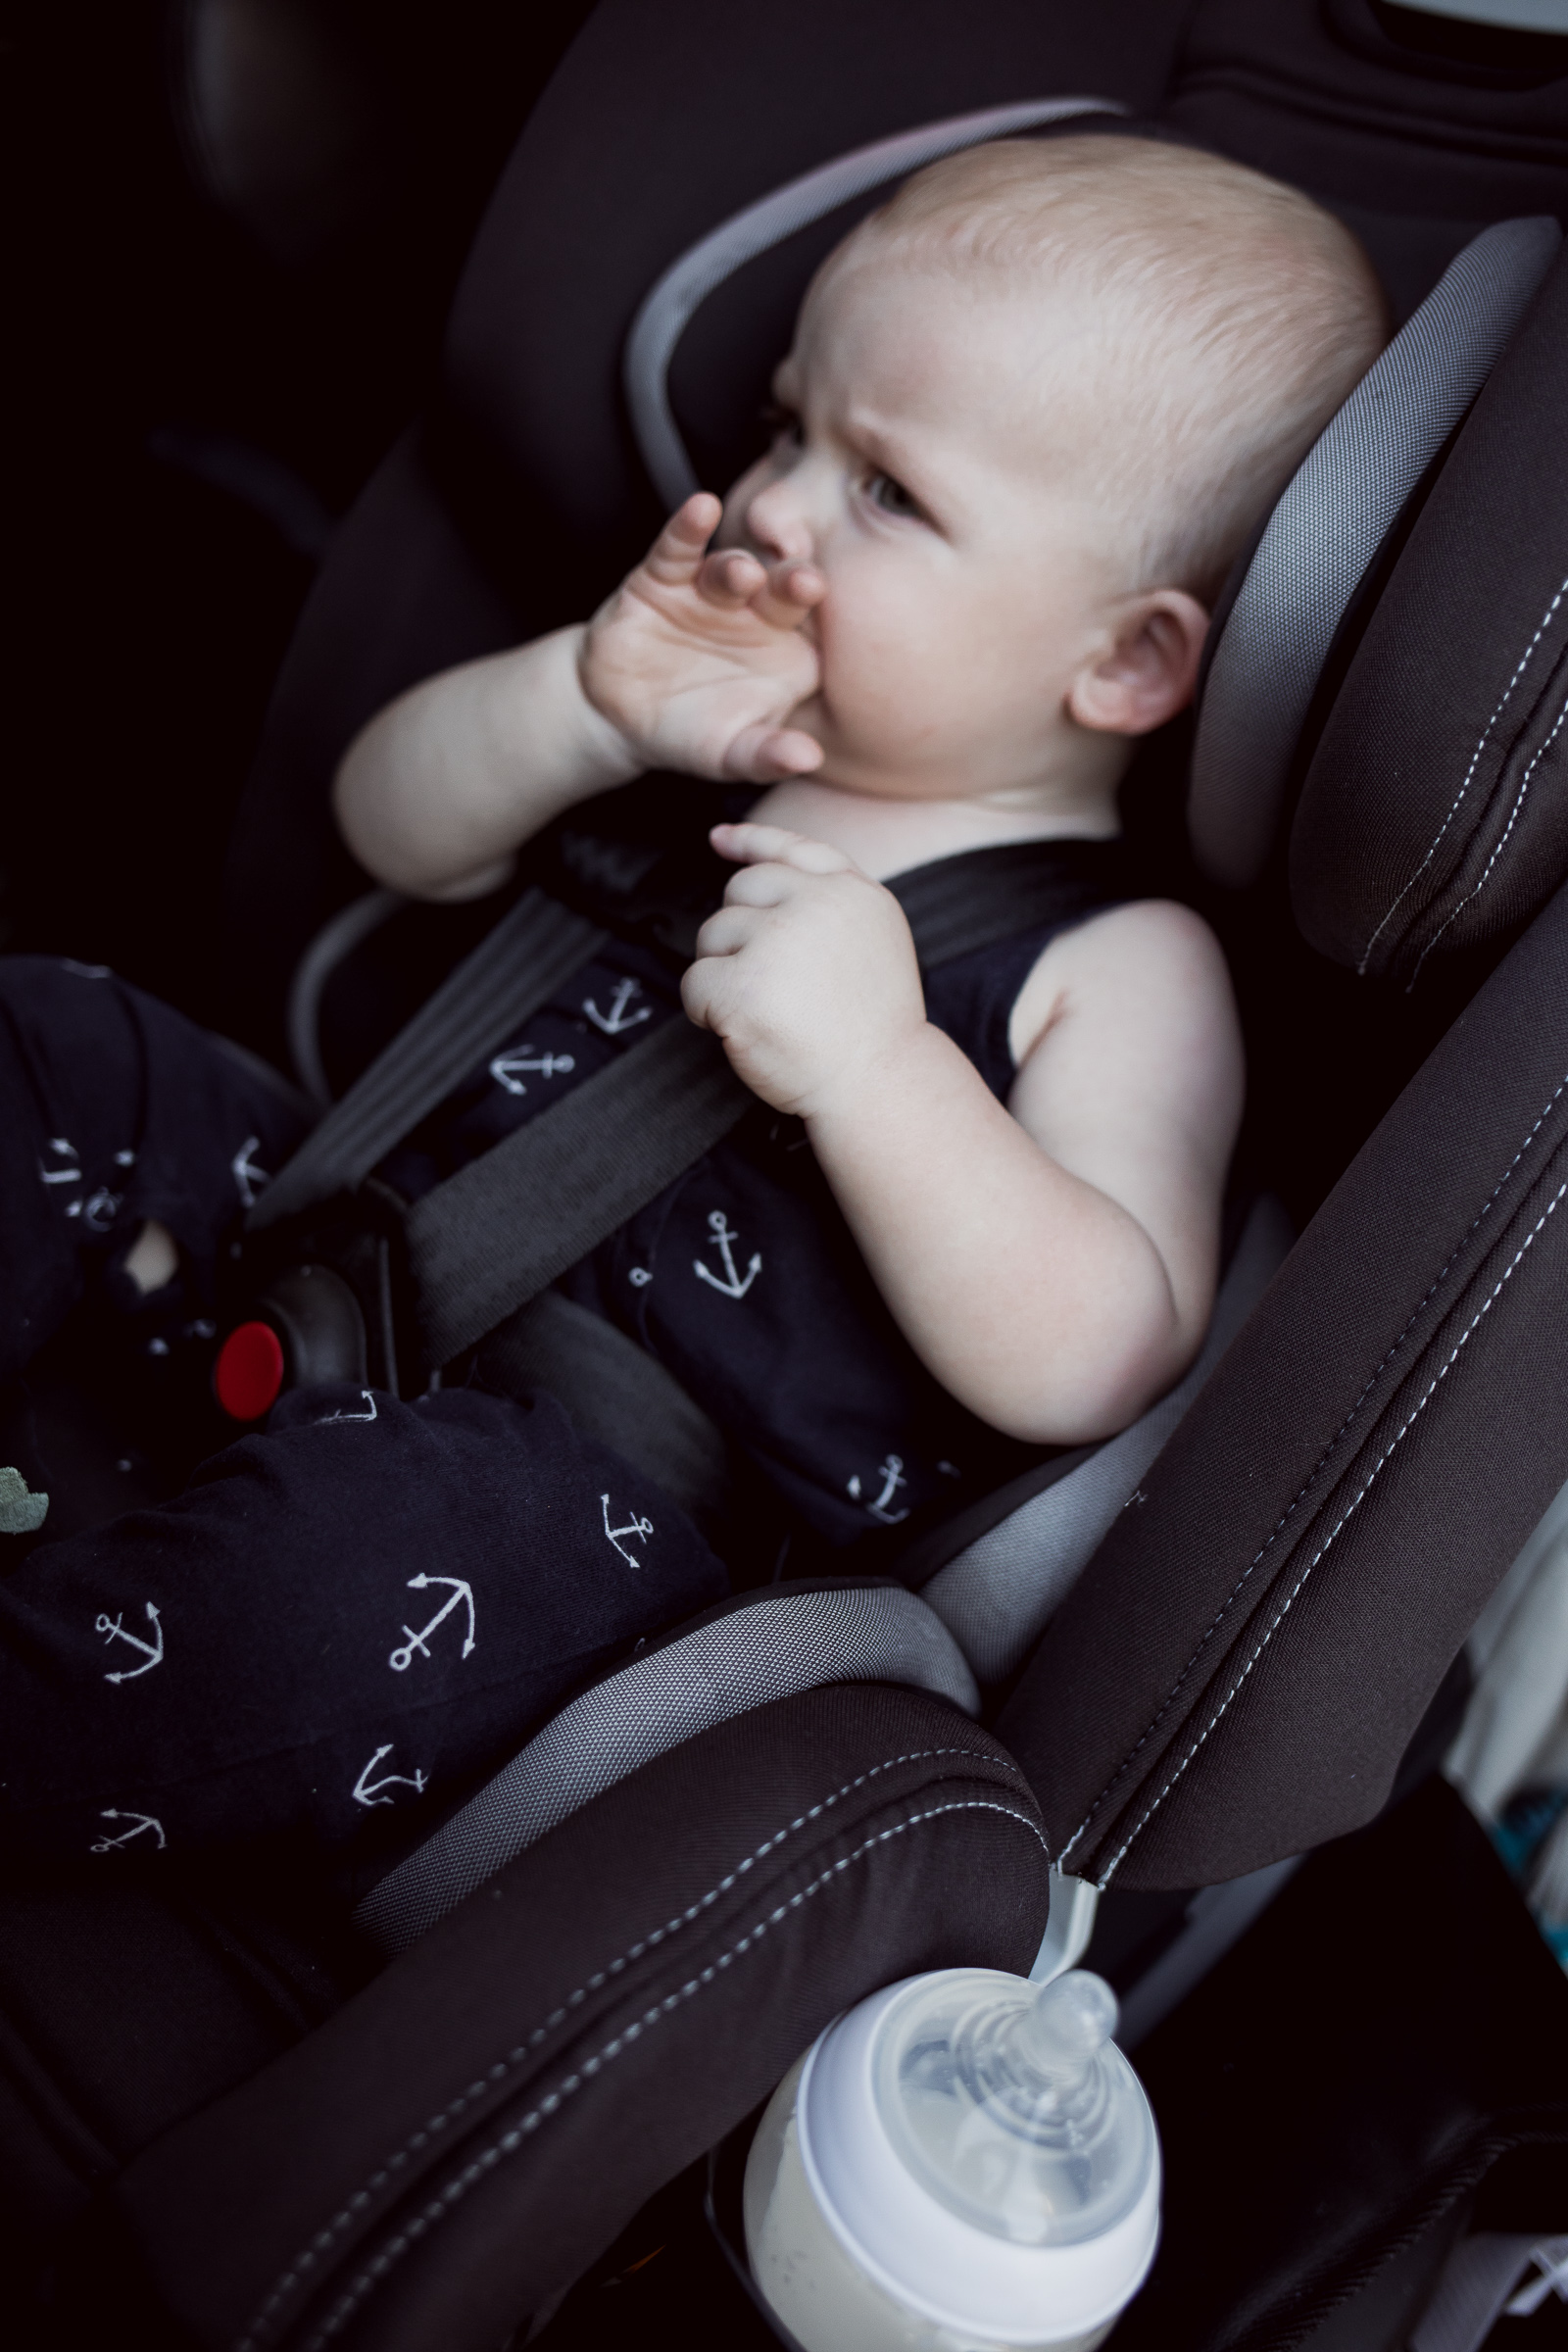 Elly Brown shares her review on the Baby Jogger City View Car Seat and why she loves it